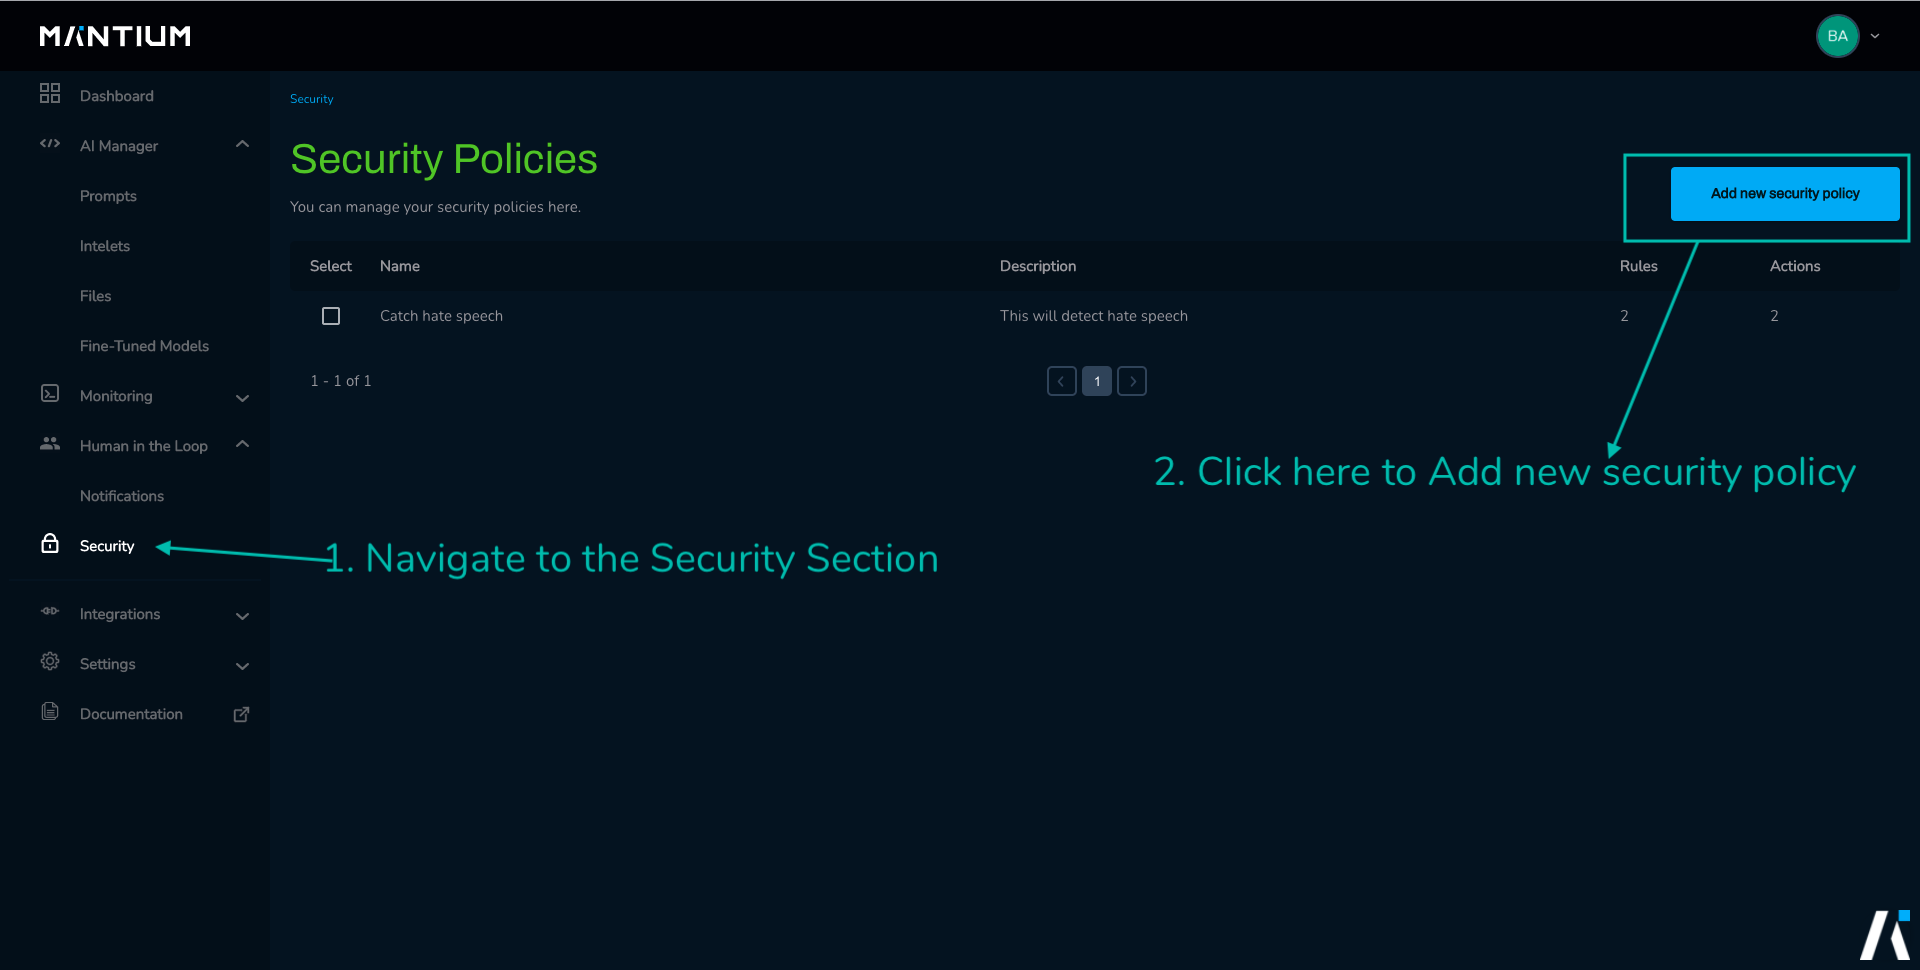 Add a new security policy